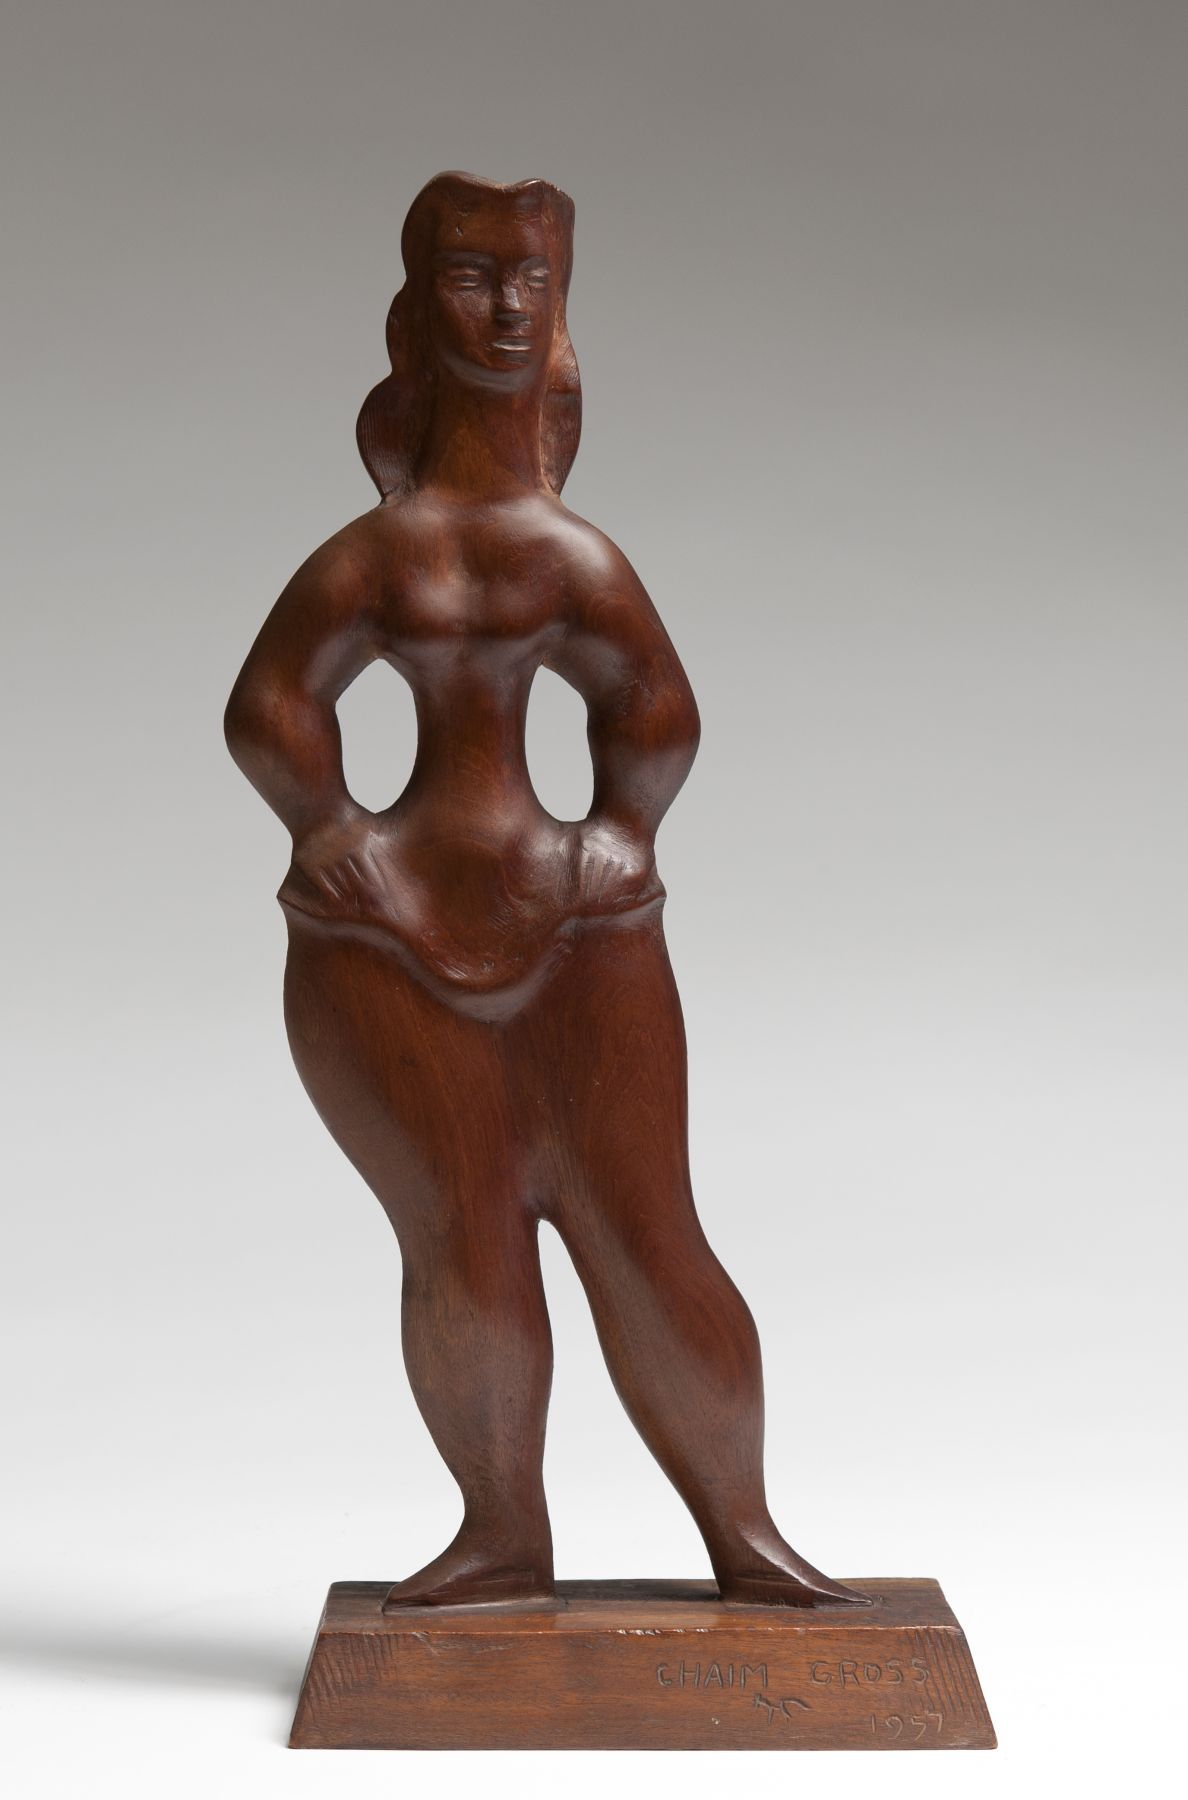 Chaim Gross, Circus Girl, 1957, Mahogany, 15 3/4 h x 8 w x 3 1/2 d (at base) inches